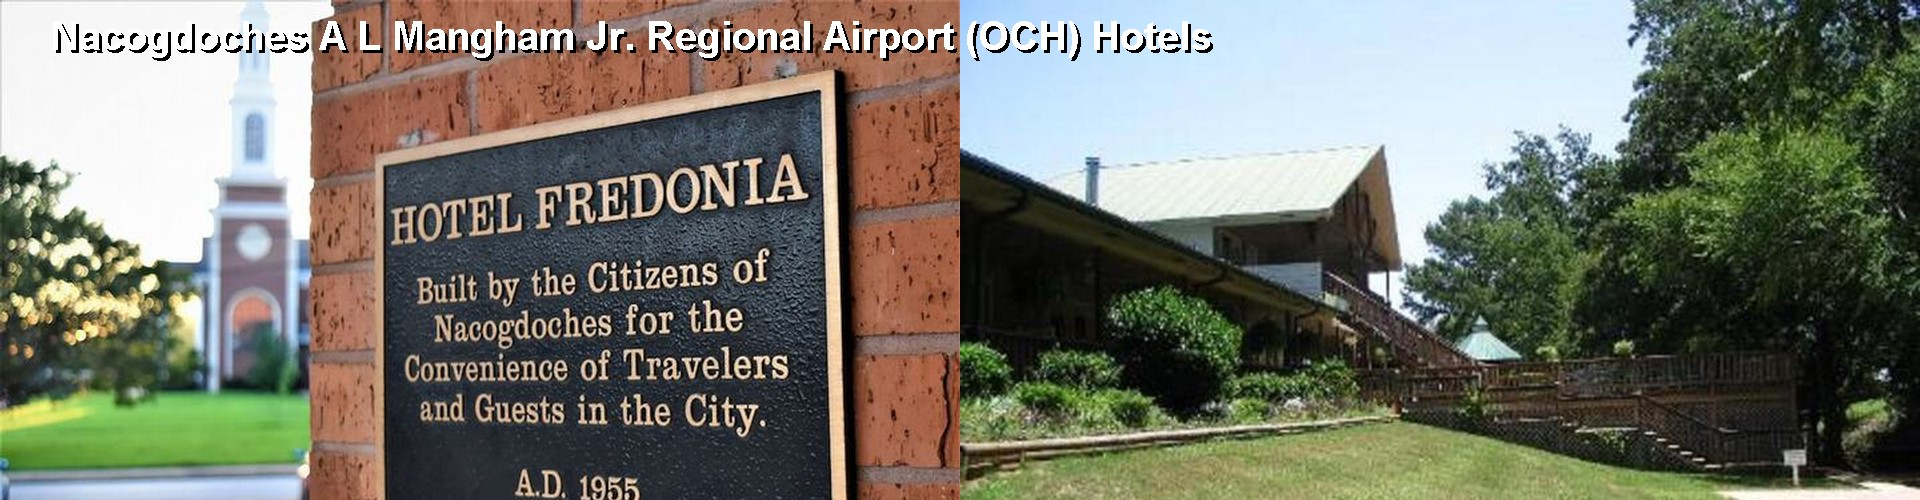 5 Best Hotels near Nacogdoches A L Mangham Jr. Regional Airport (OCH)